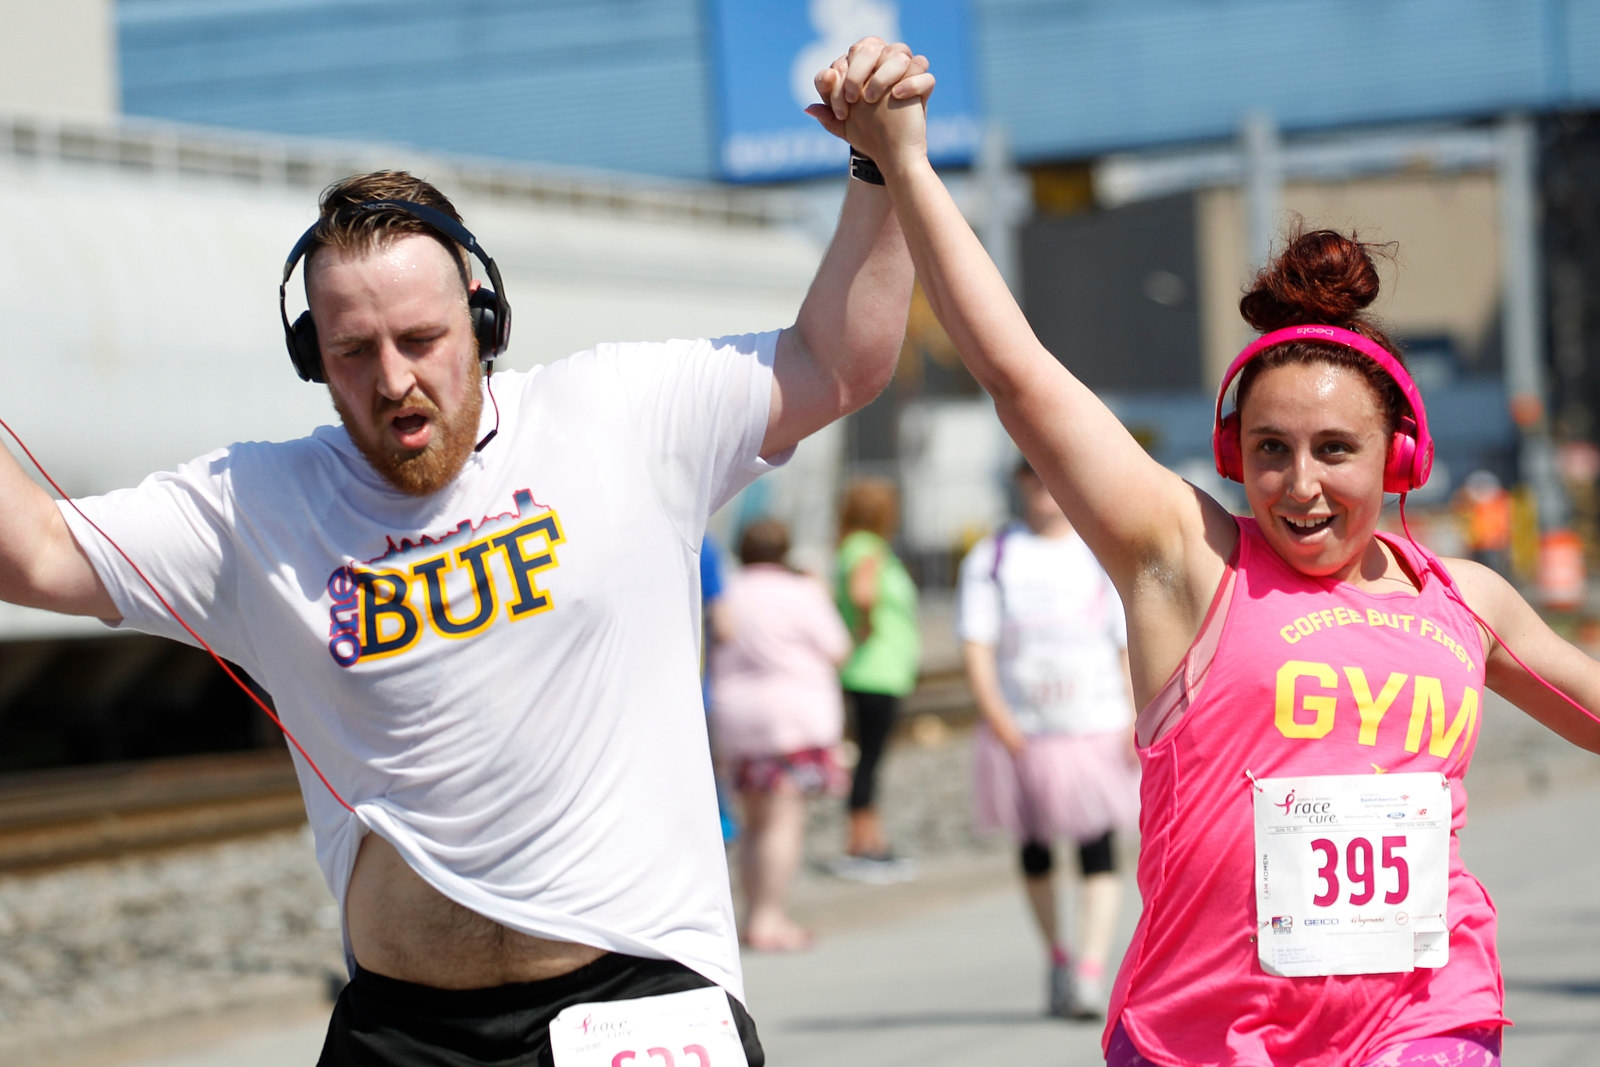 Ryan Boggs and his girlfriend Mary Bostwick cross the finish line as they complete the 5k race.